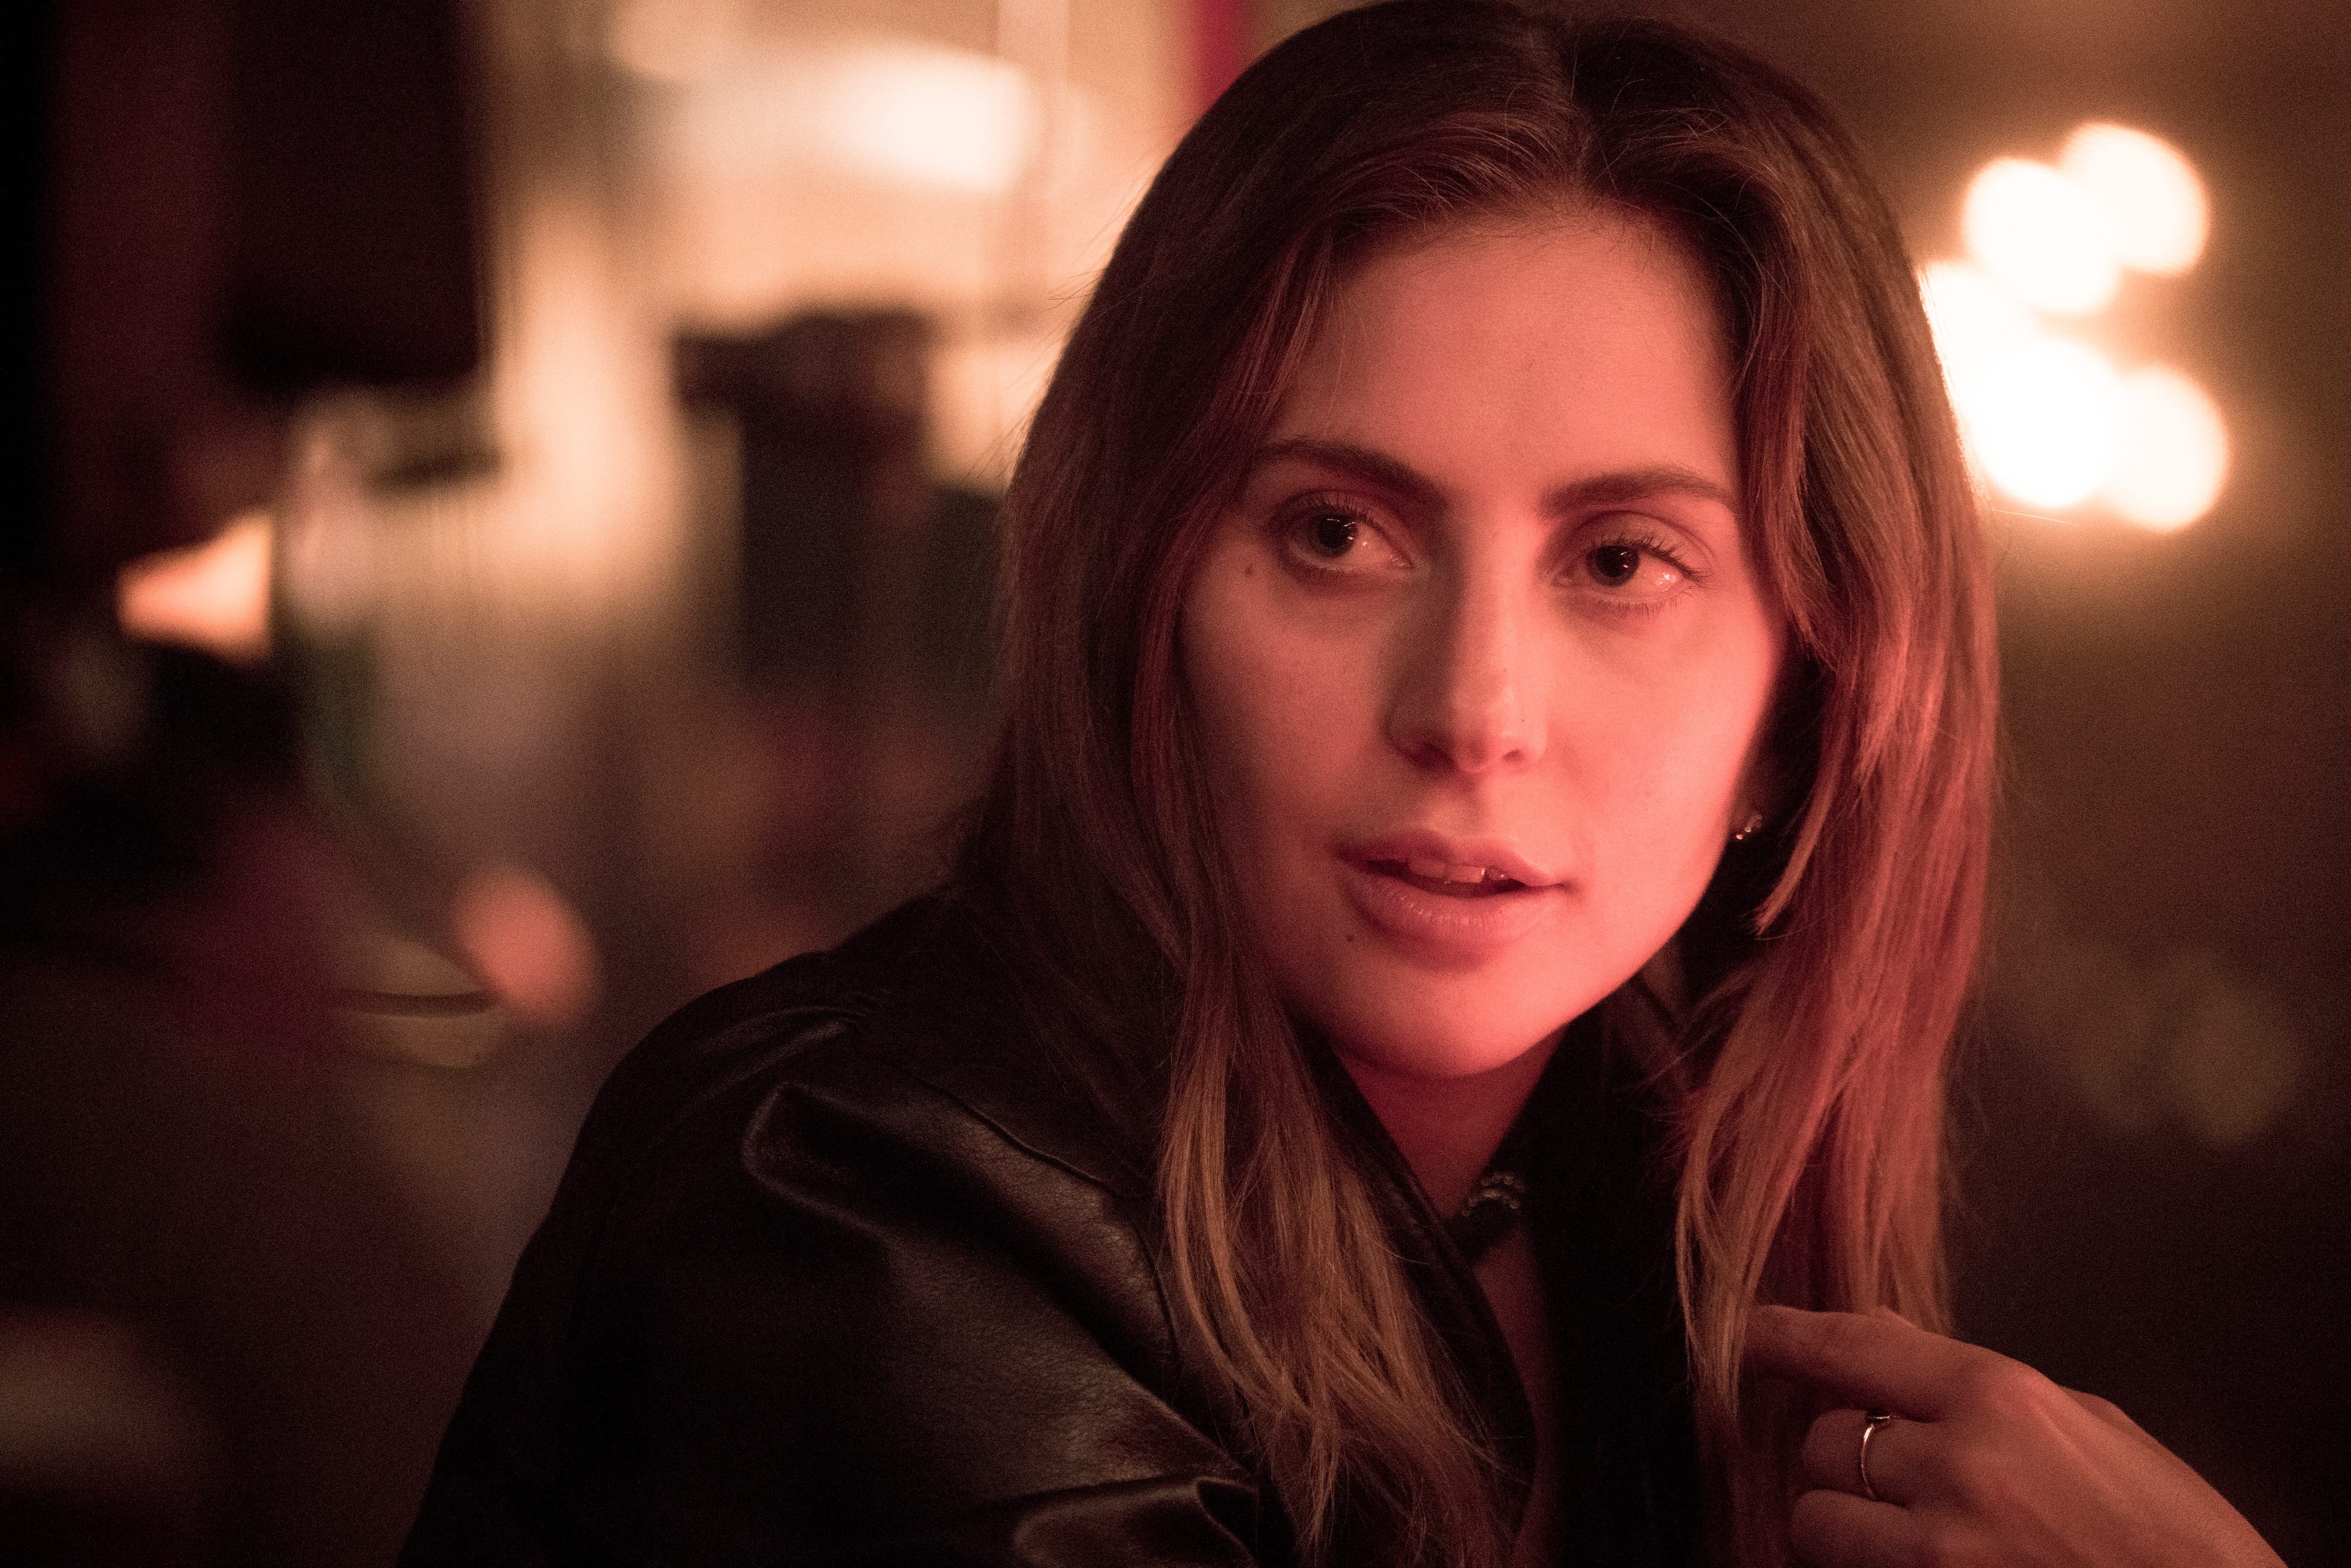 """Lady Gaga in a scene from the latest reboot of the film, """"A Star is Born."""" The National Board of Review has named the feel-good road-trip drama """"Green Book"""" the best film of the year, and its star, Viggo Mortensen, best actor. """"A Star Is Born"""" also took several top awards, including best director for Bradley Cooper, best actress for Lady Gaga and best supporting actor for Sam Elliott."""